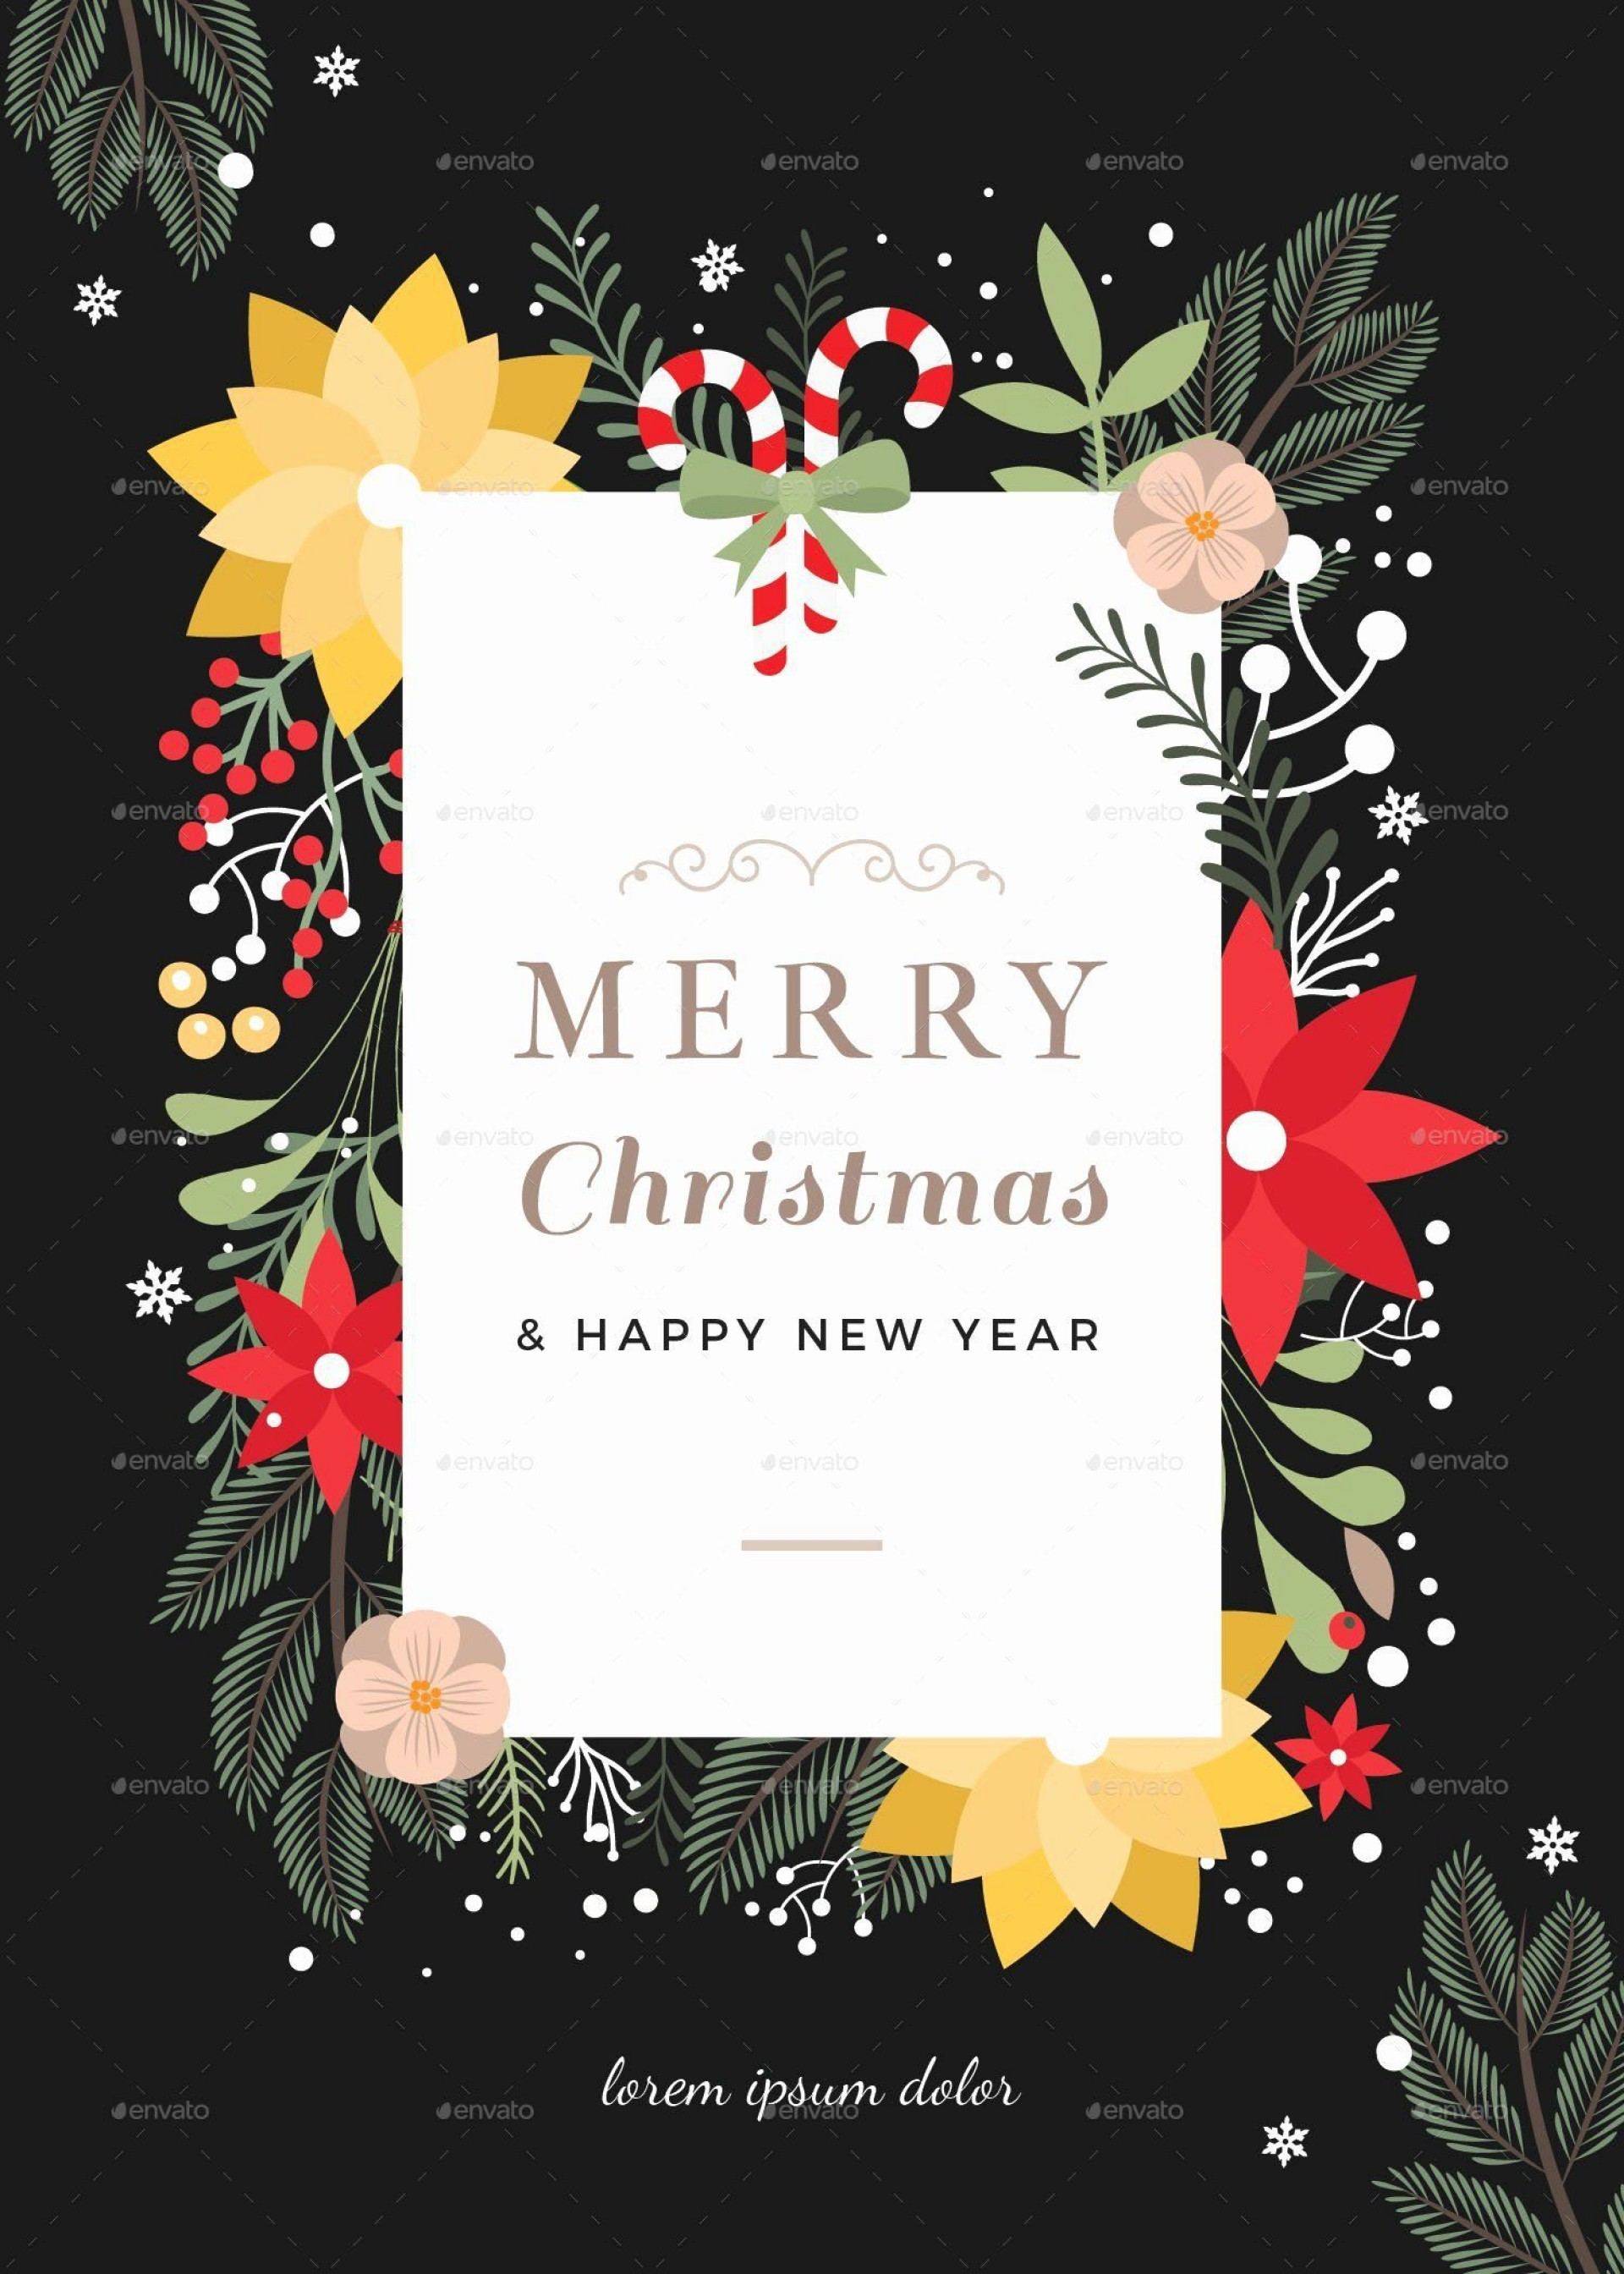 003 Phenomenal Christma Card Template Free Download Photo  Downloads Photoshop Editable1920